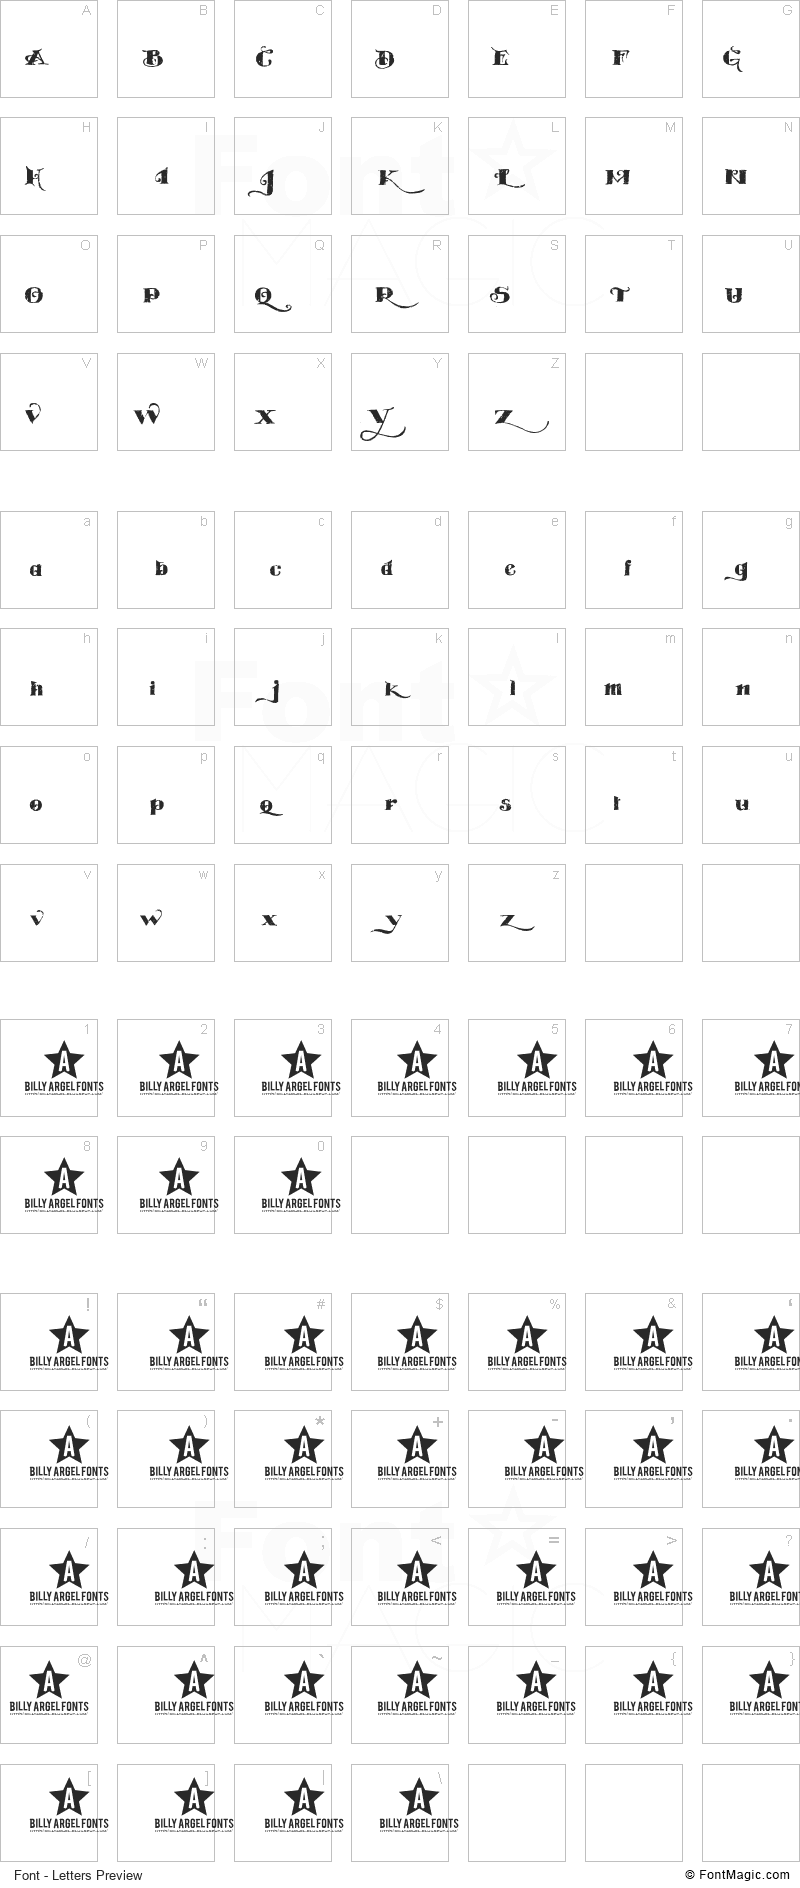 Easy Trouble Font - All Latters Preview Chart